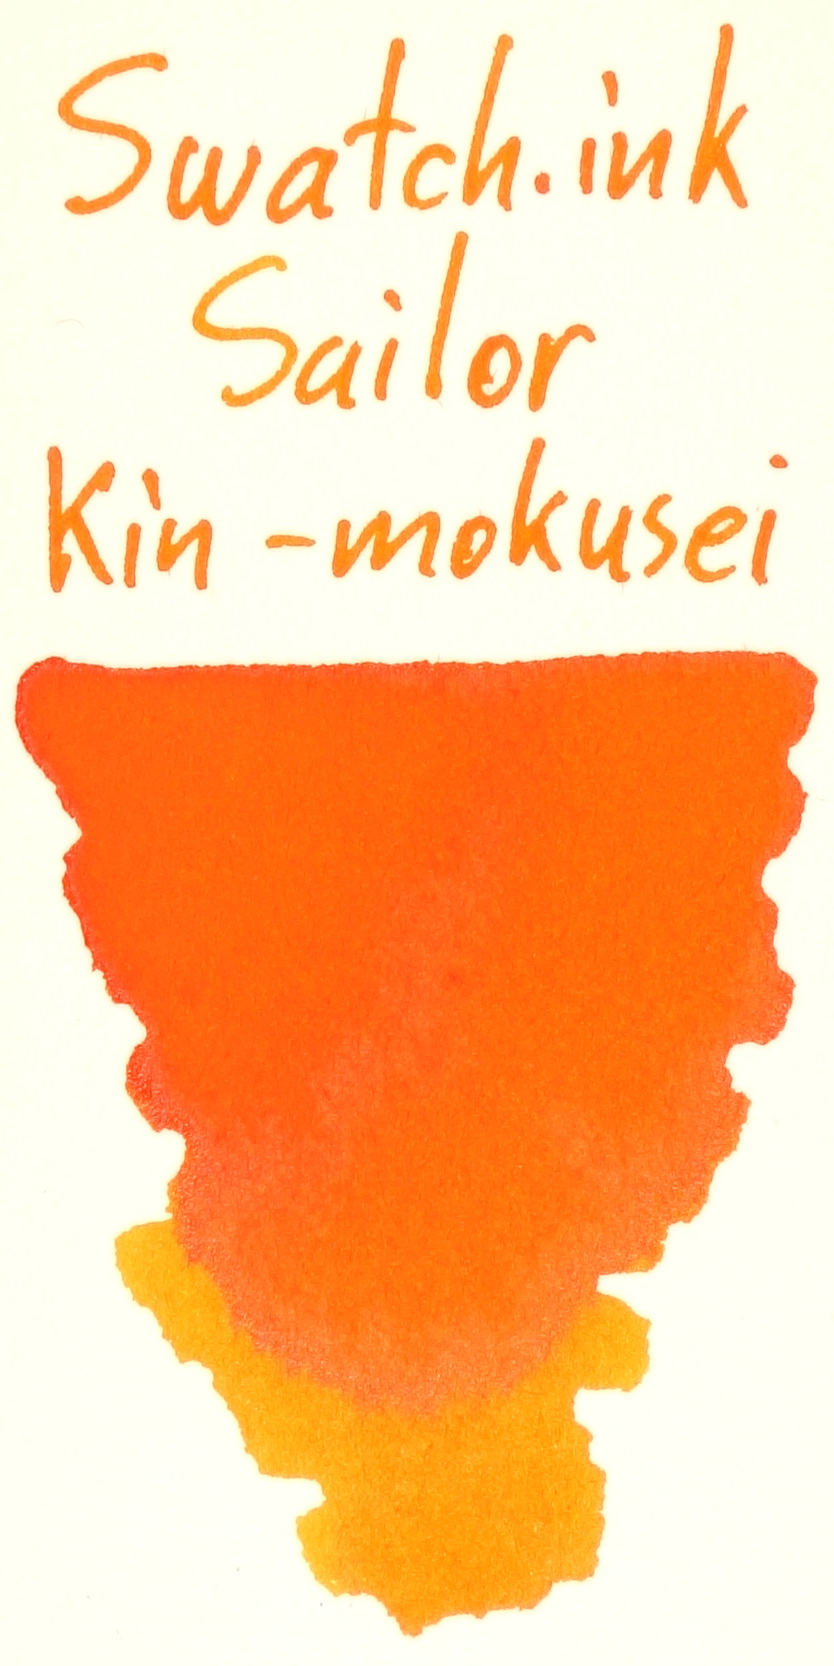 Sailor Kin-mokusei Swatch.ink.JPG